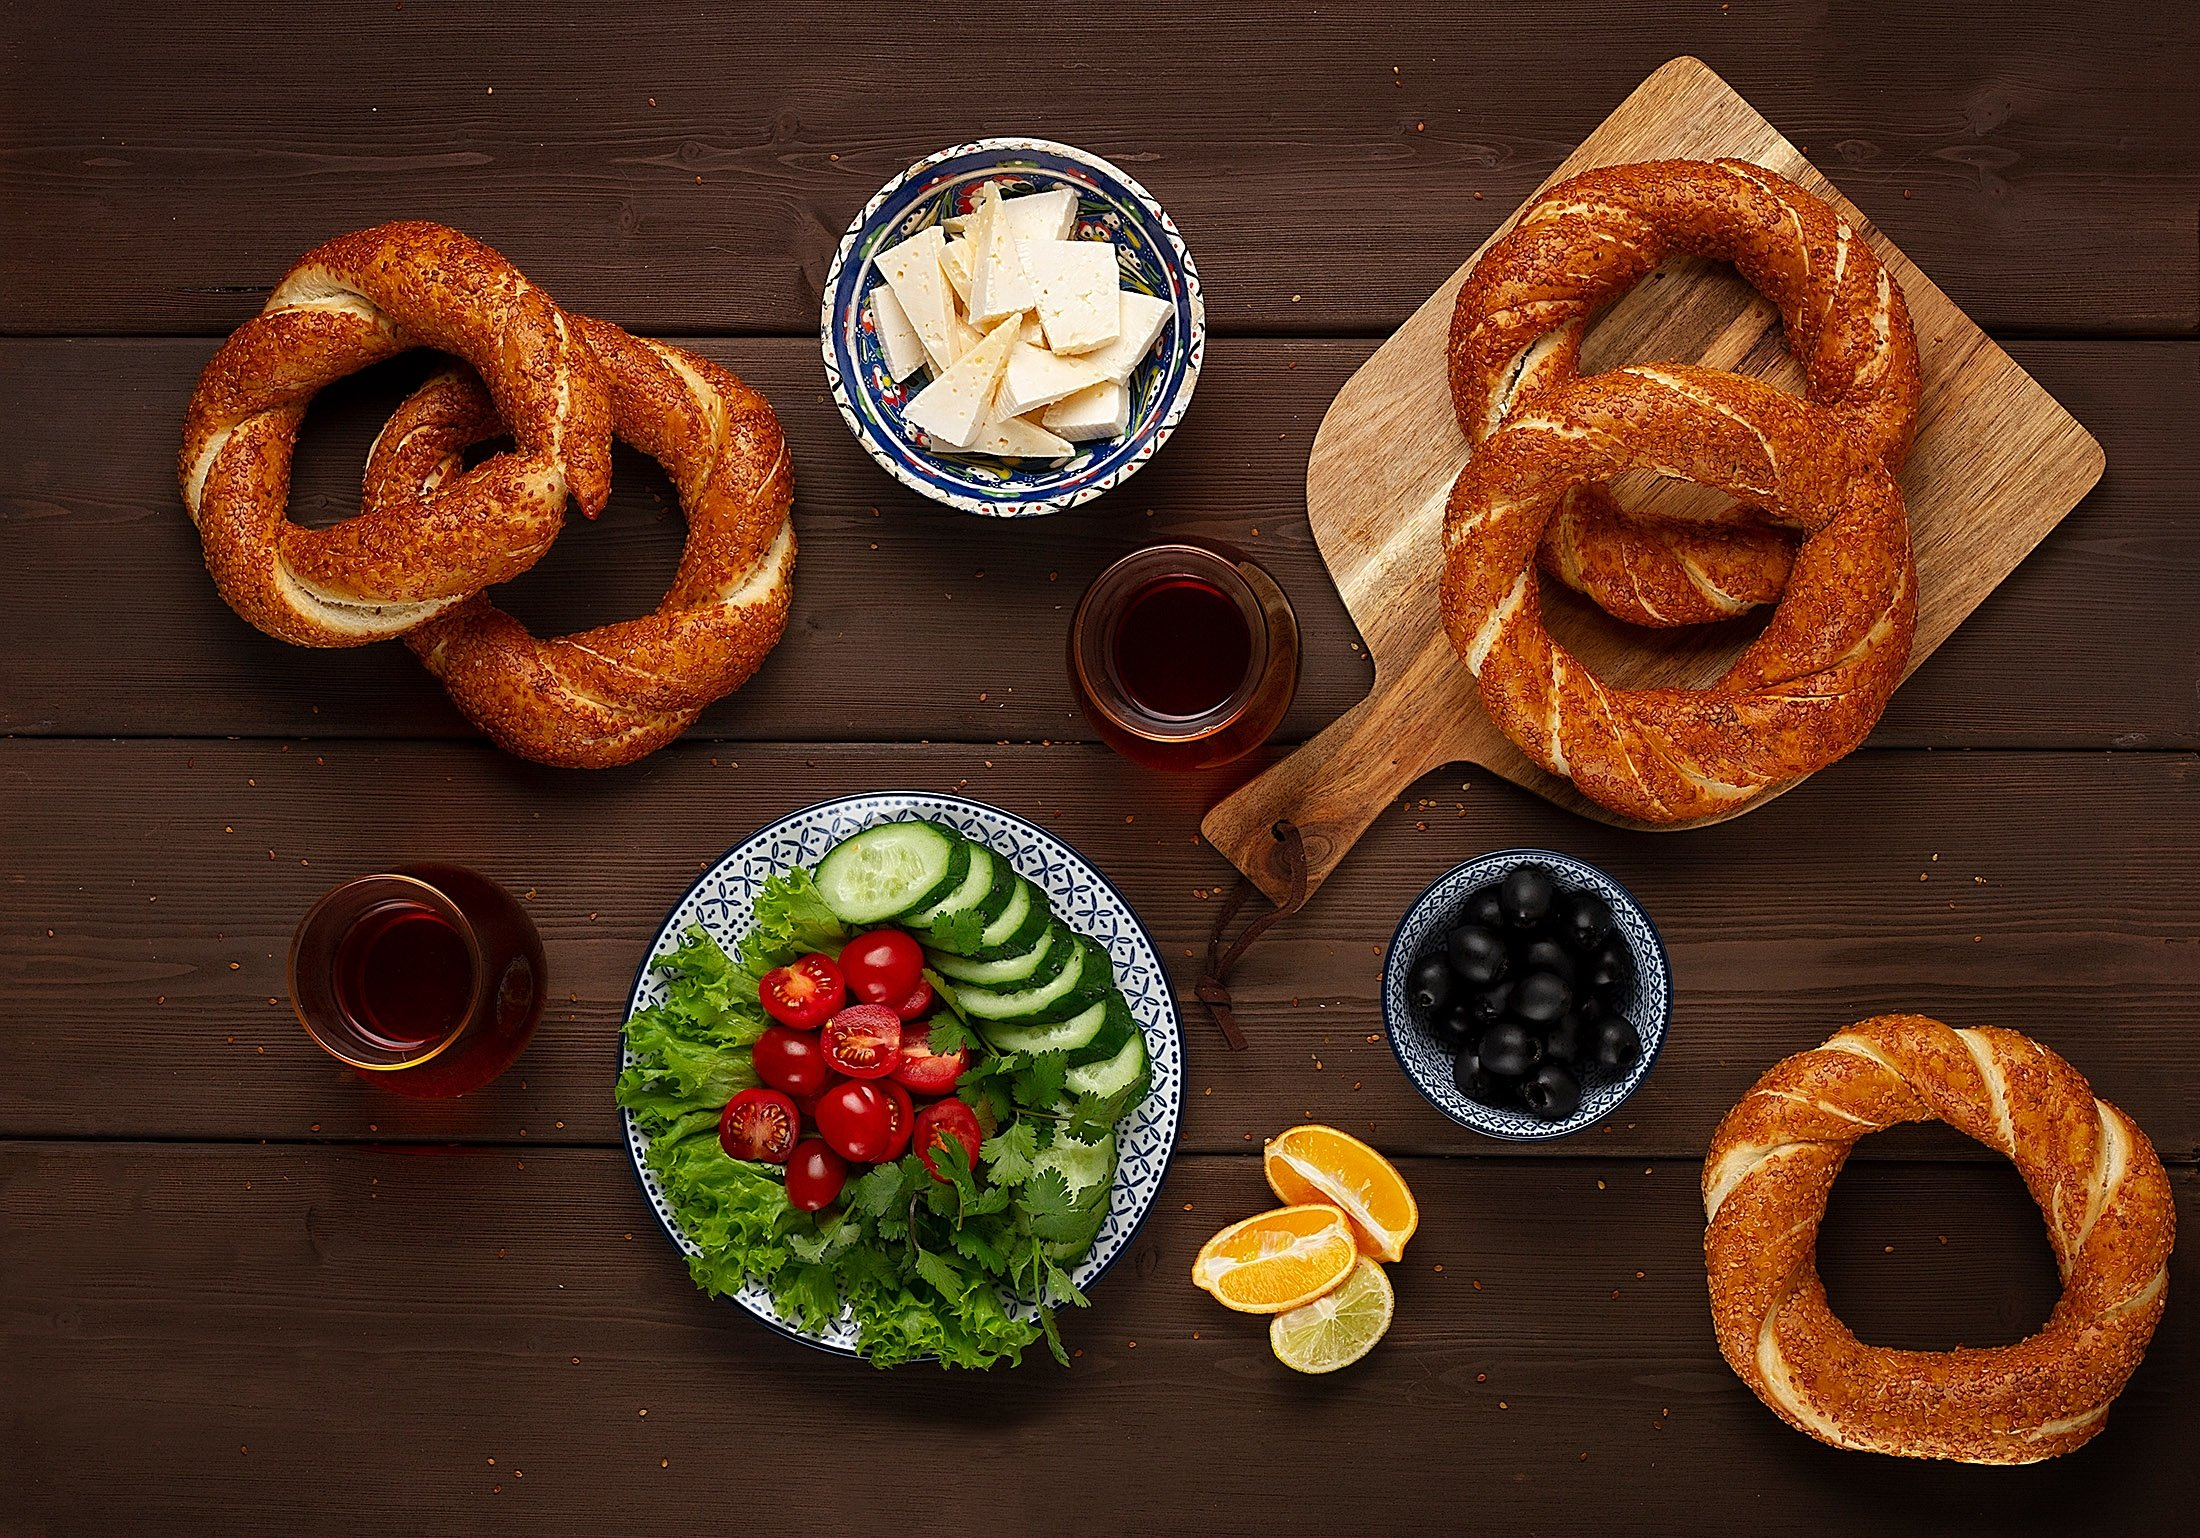 Simit is one of the most popular Turkish breakfast snacks. (Shutterstock Photo)